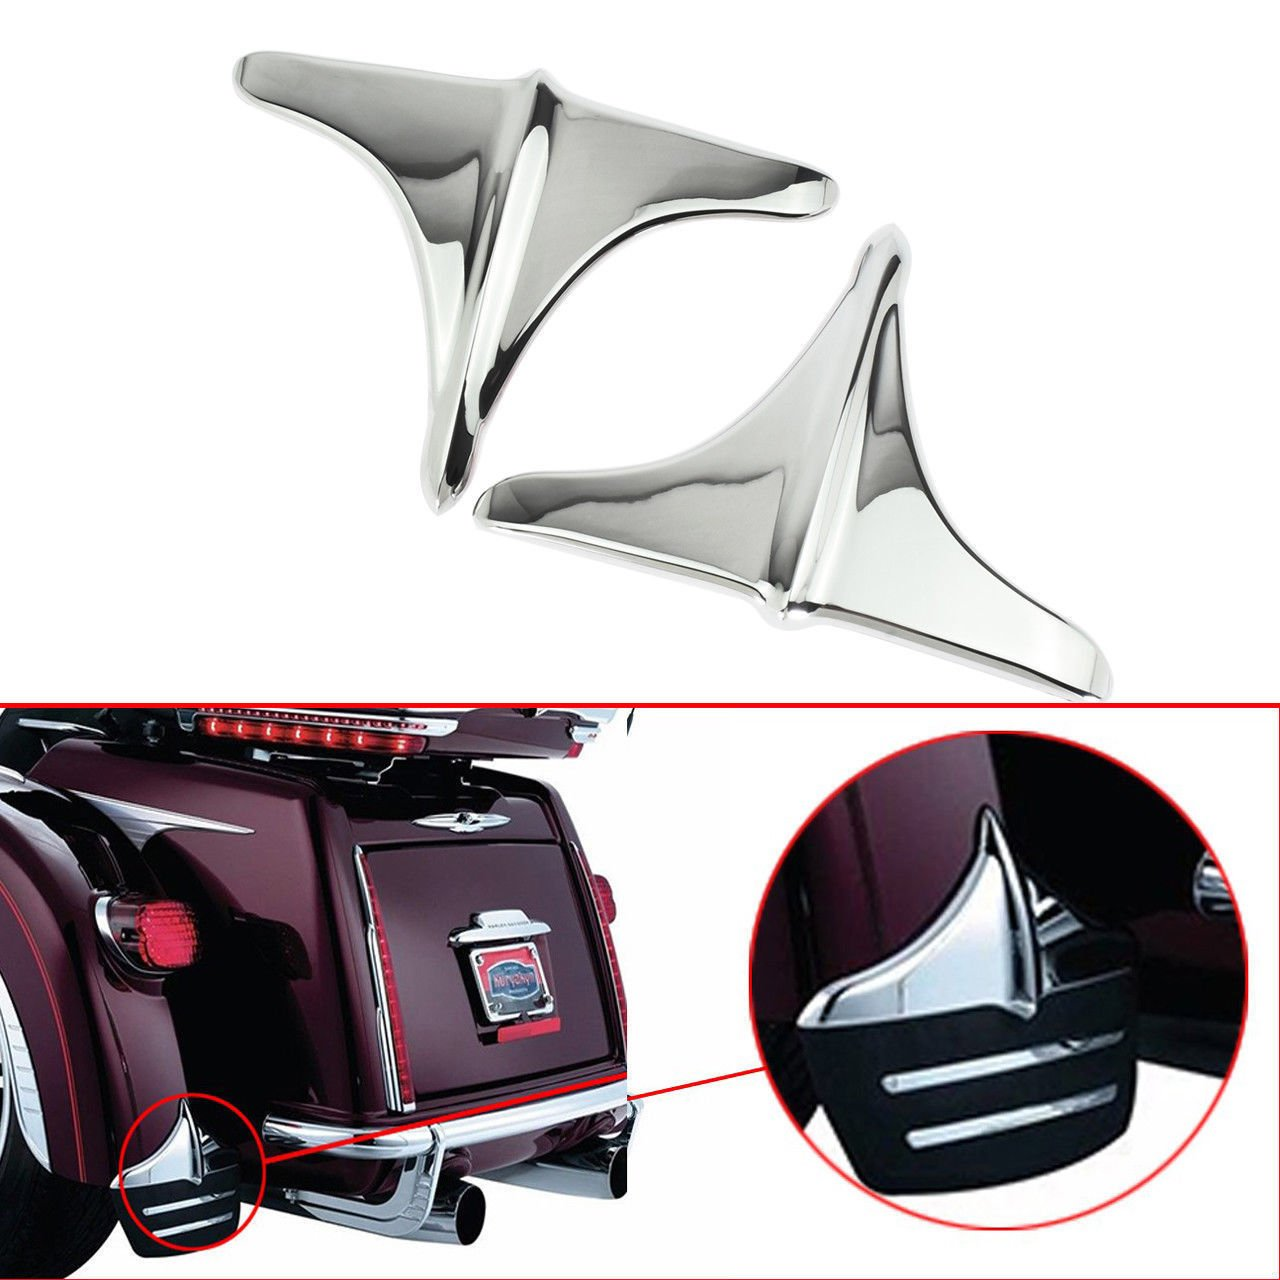 Rear Fender Accents Leading Front Edge Trim for Harley Touring Trikes Tri Glide UItra Classic 2009-2017 (Chrome)